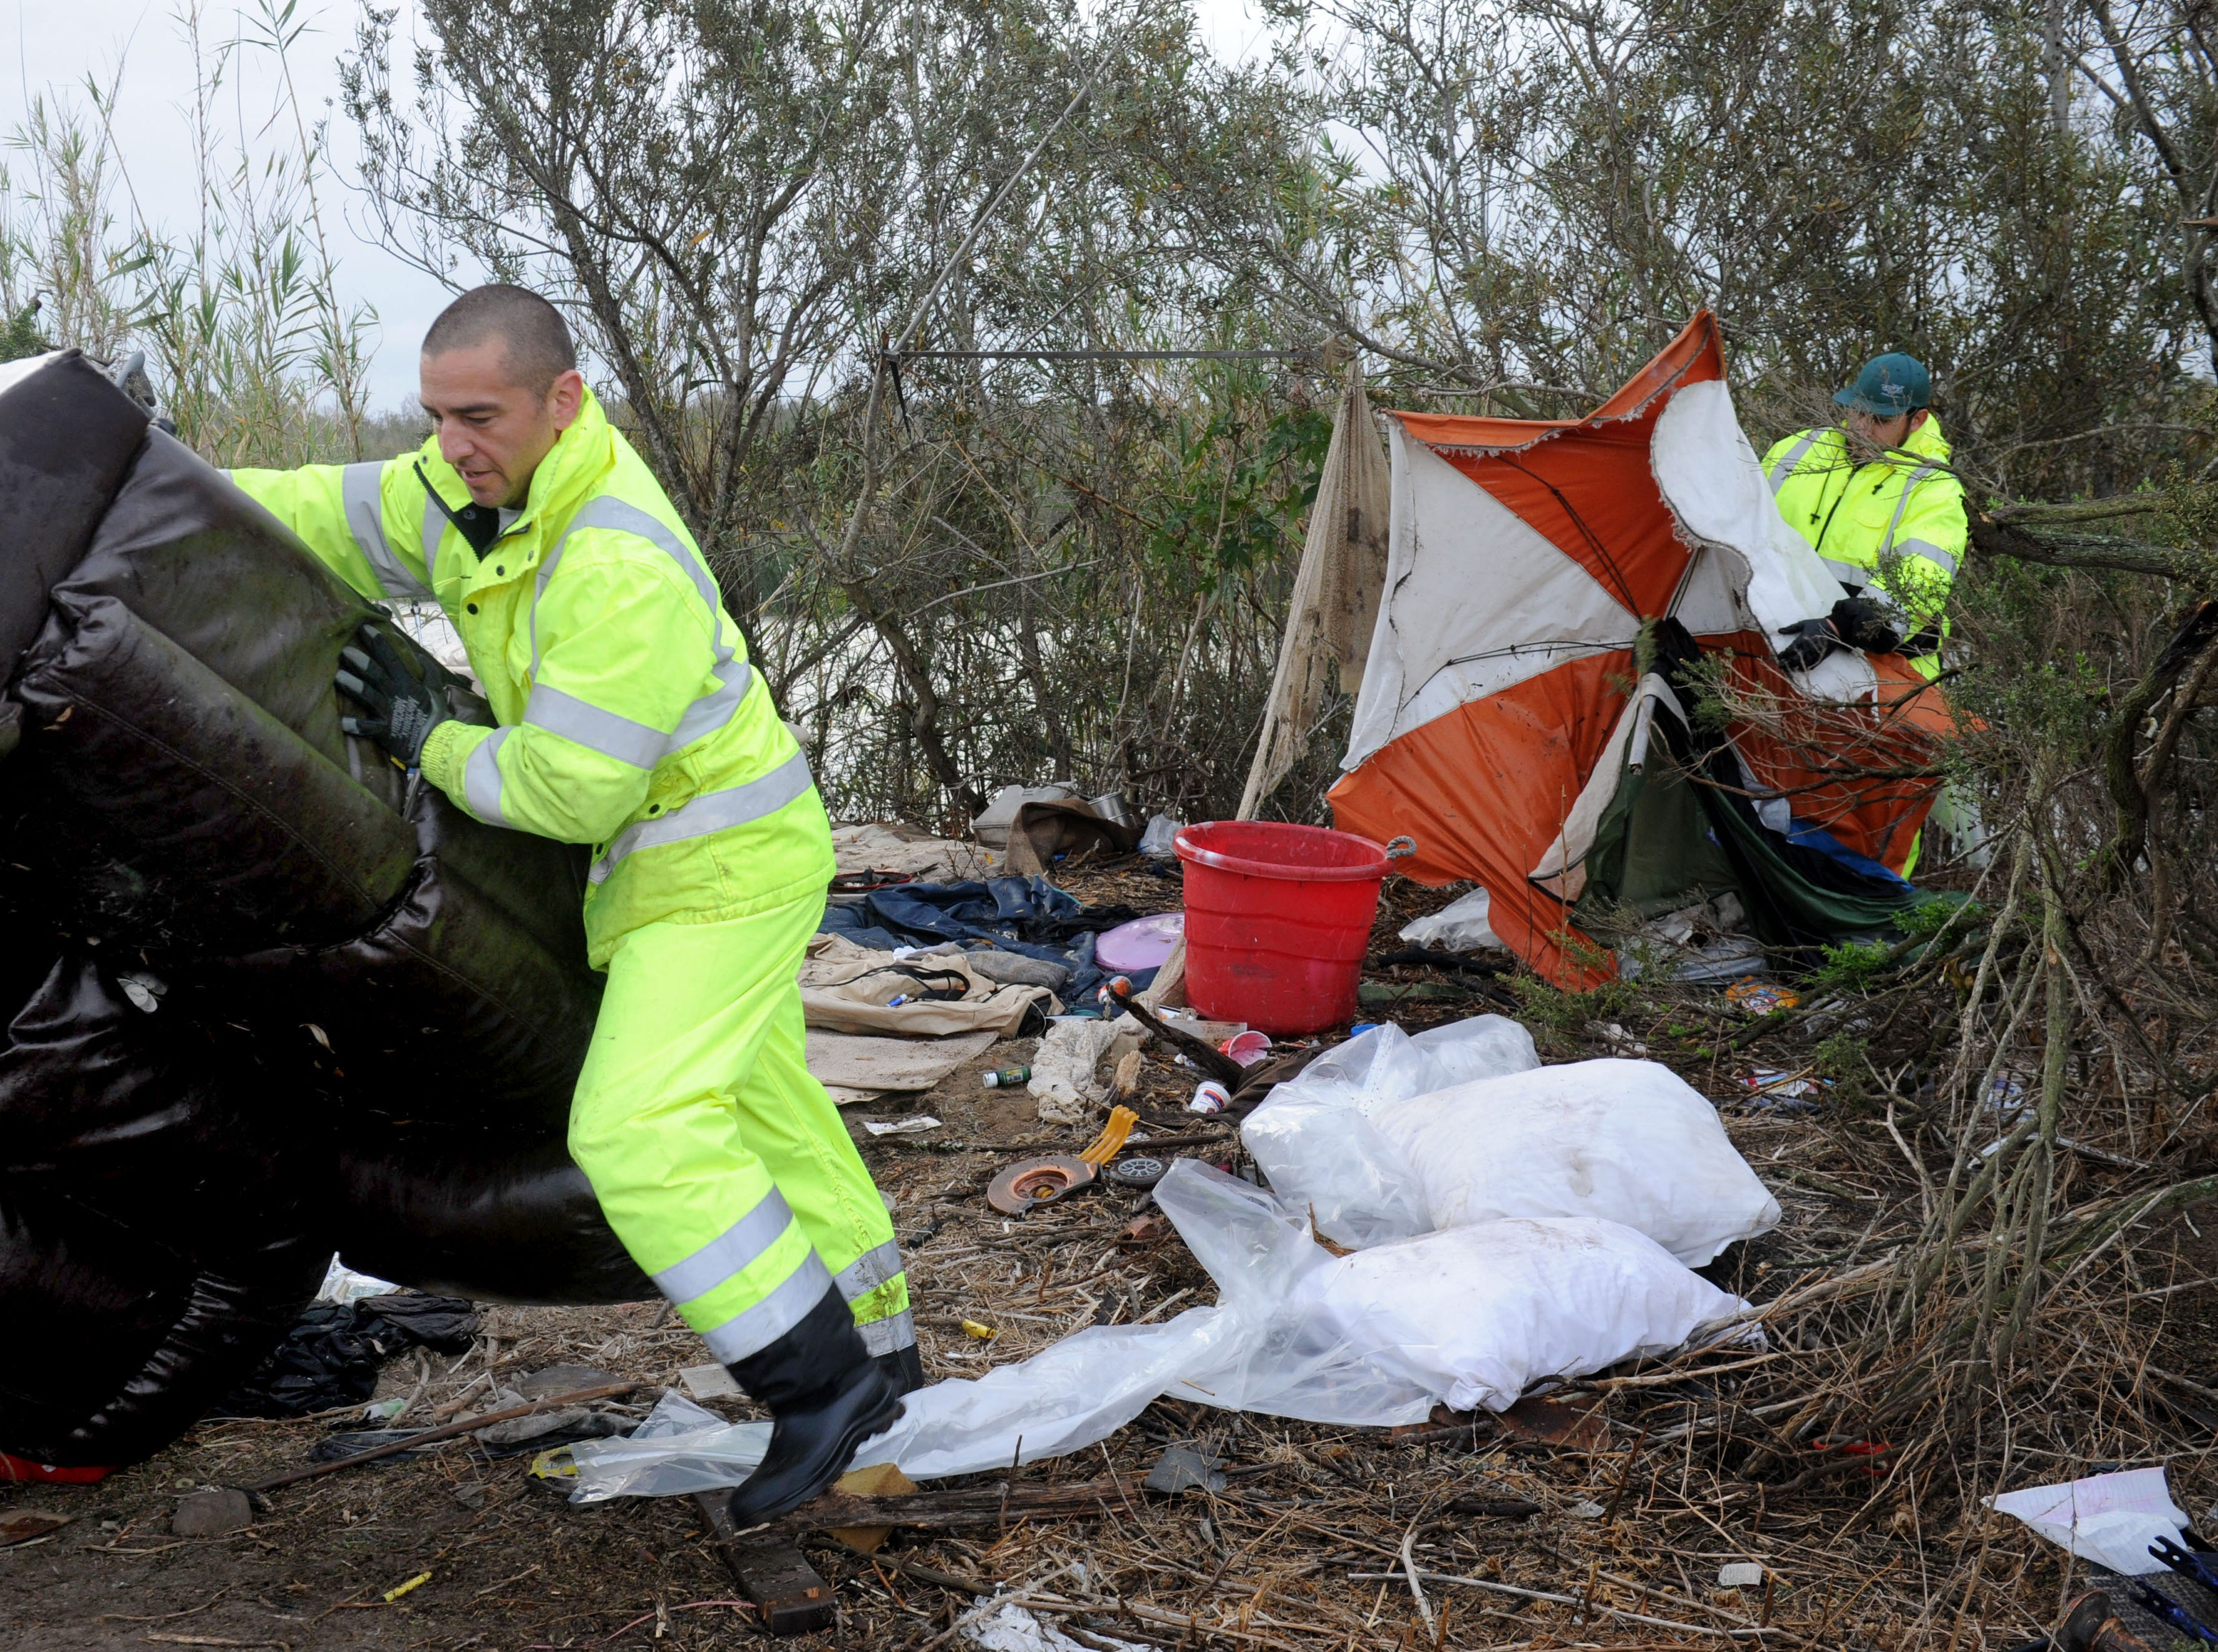 Ventura City employees Ryan Scholle and Sam Ruiz clean up homeless trash Thursday along the Santa Clara River bottom. The city of Ventura organized the effort along the embankment where homeless people live.